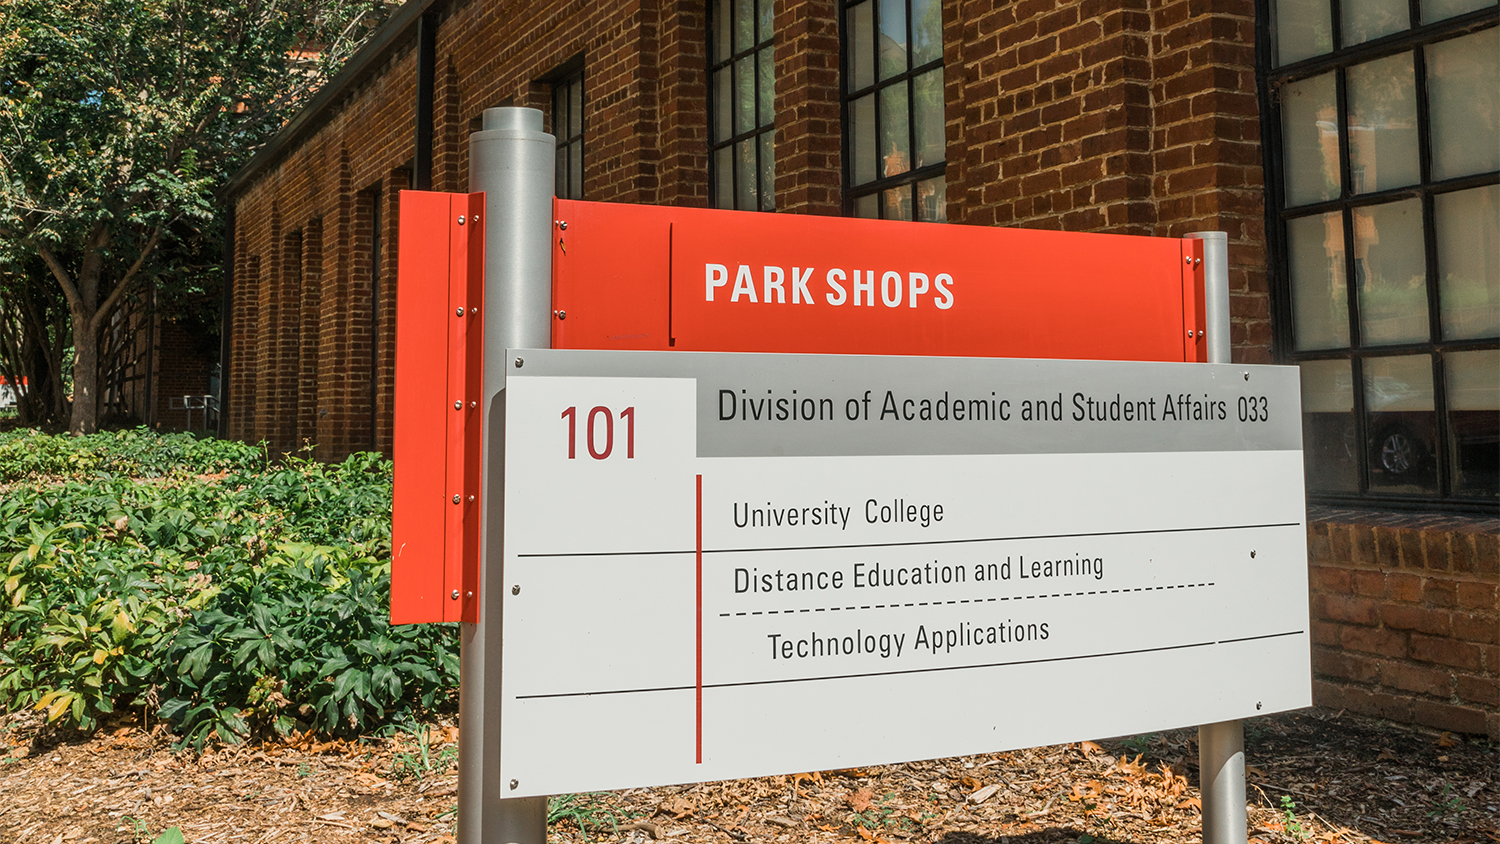 Sign for Park Shops and the Division of Academic and Student Affairs